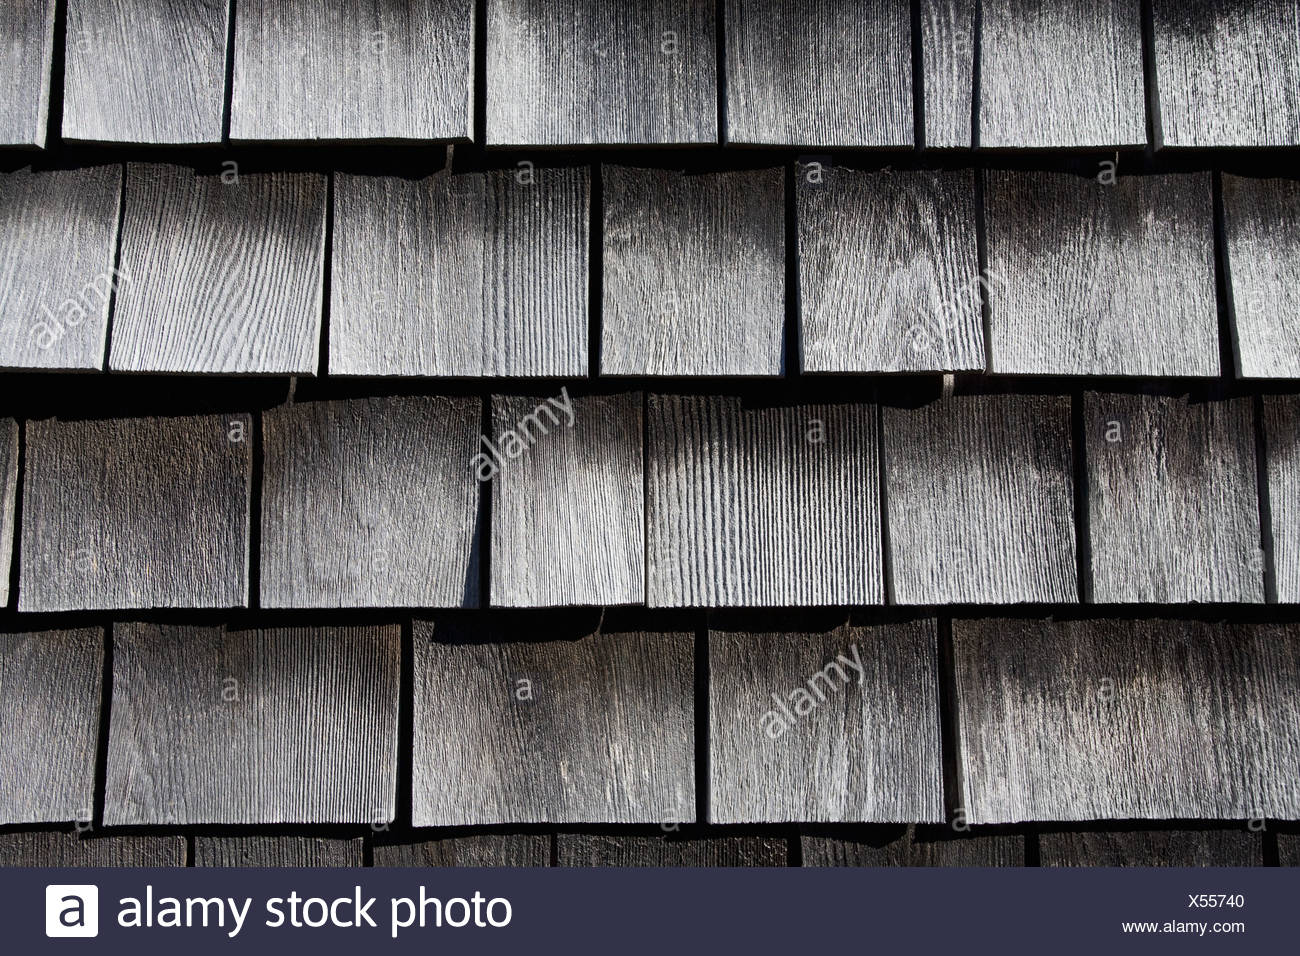 Wooden shingles - Stock Image